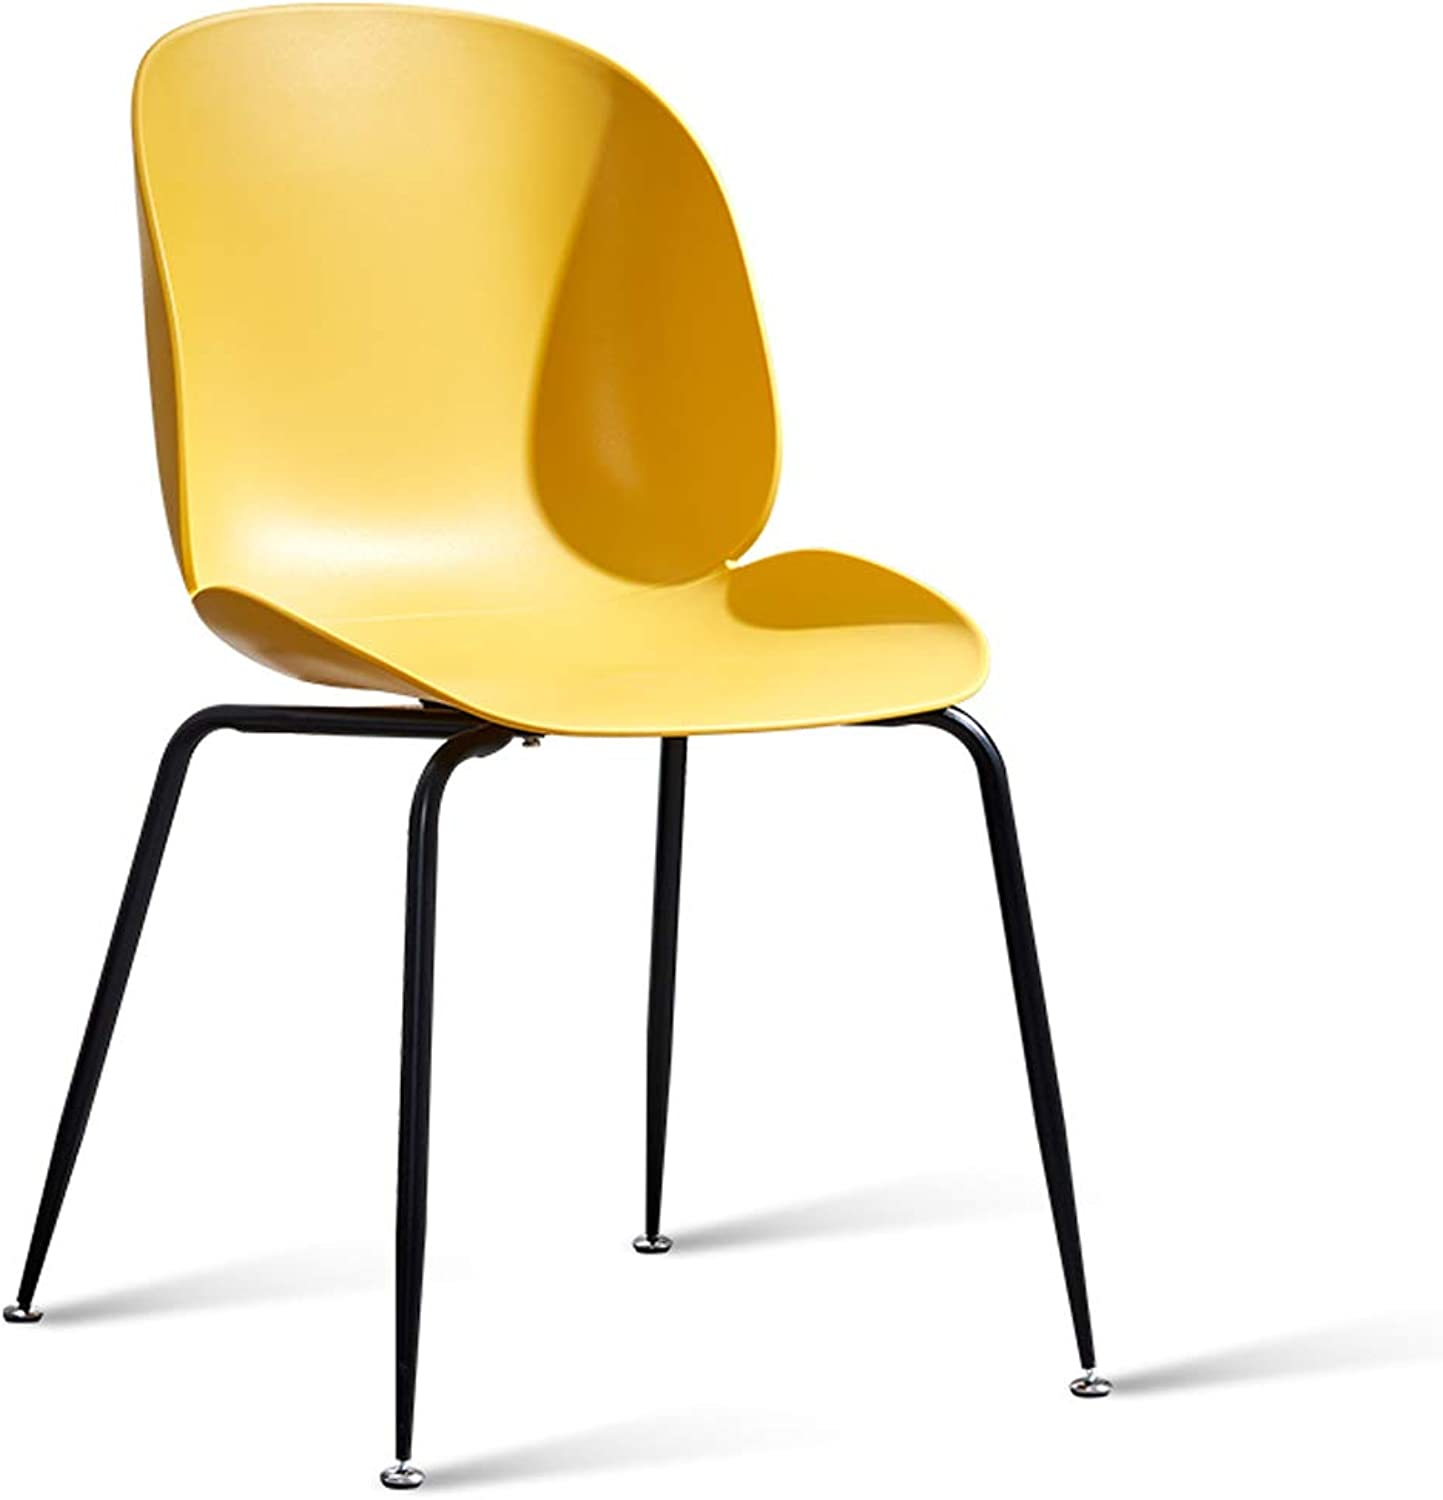 LRW Nordic Chairs, Modern Dining Chairs, Home Desks, Chairs, Leisure Backrest Stools, Yellow